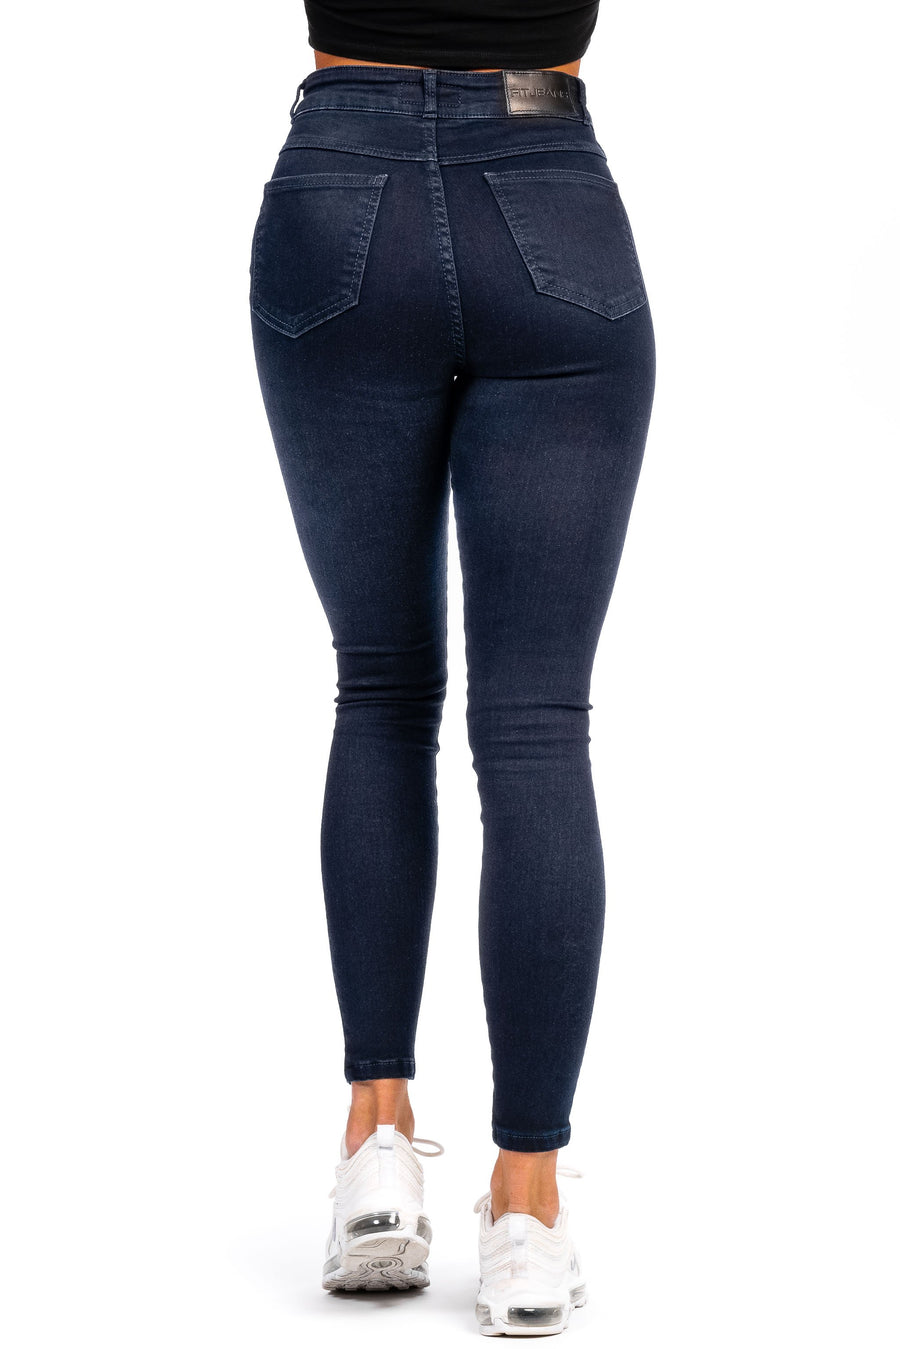 Womens Traditional High Waisted Fitjeans - Black Blue